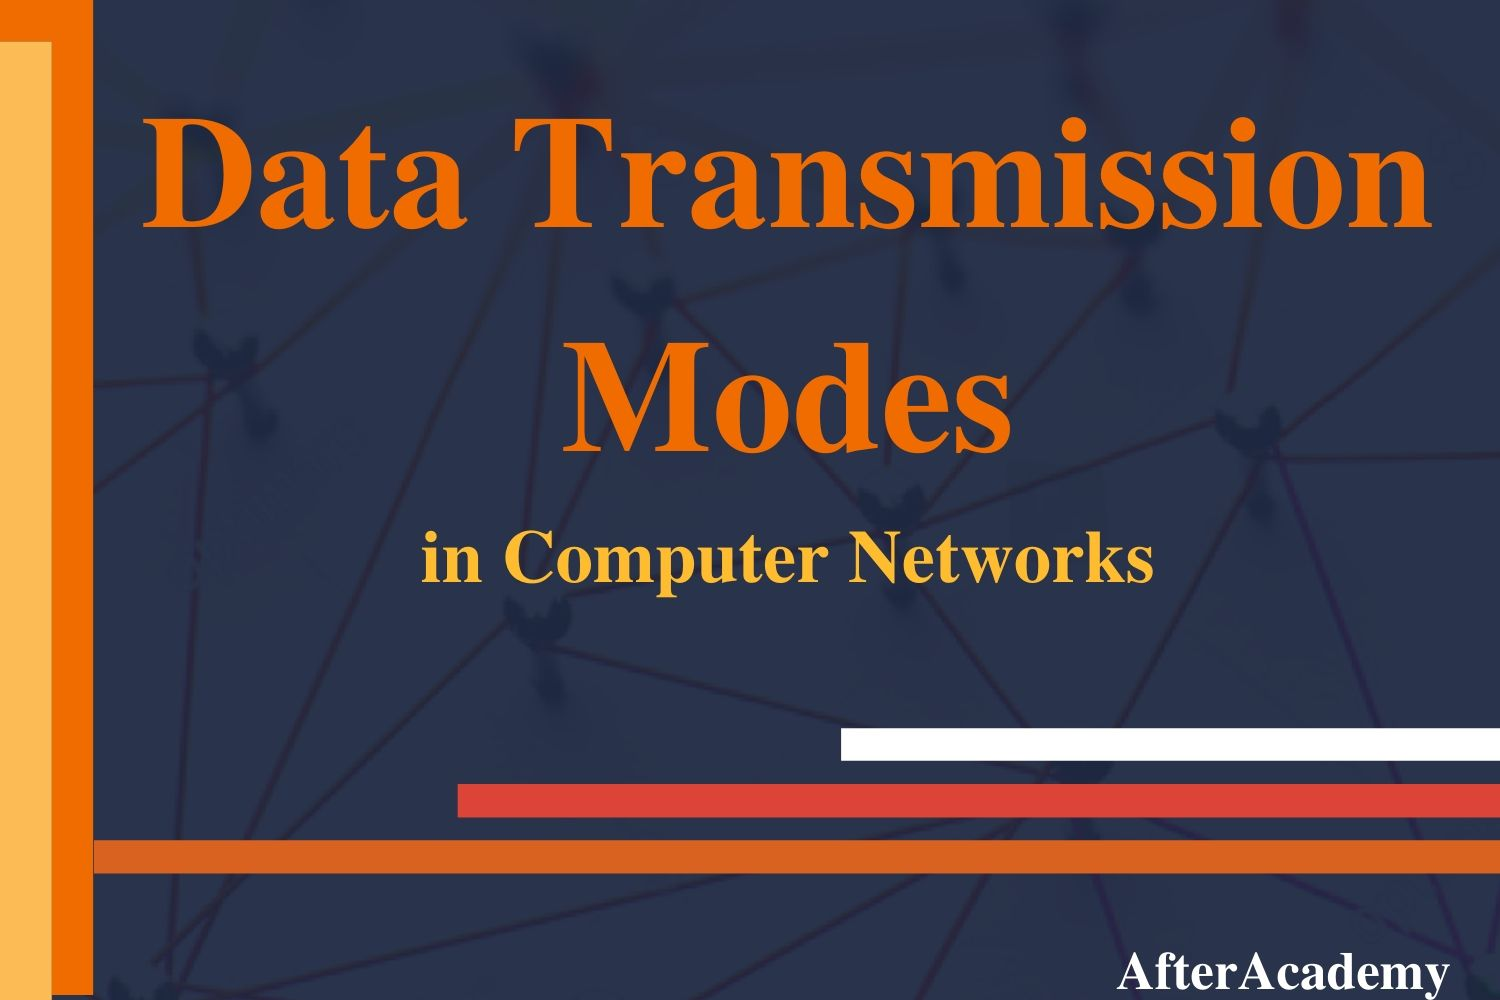 What are the Data Transmission Modes in a network?